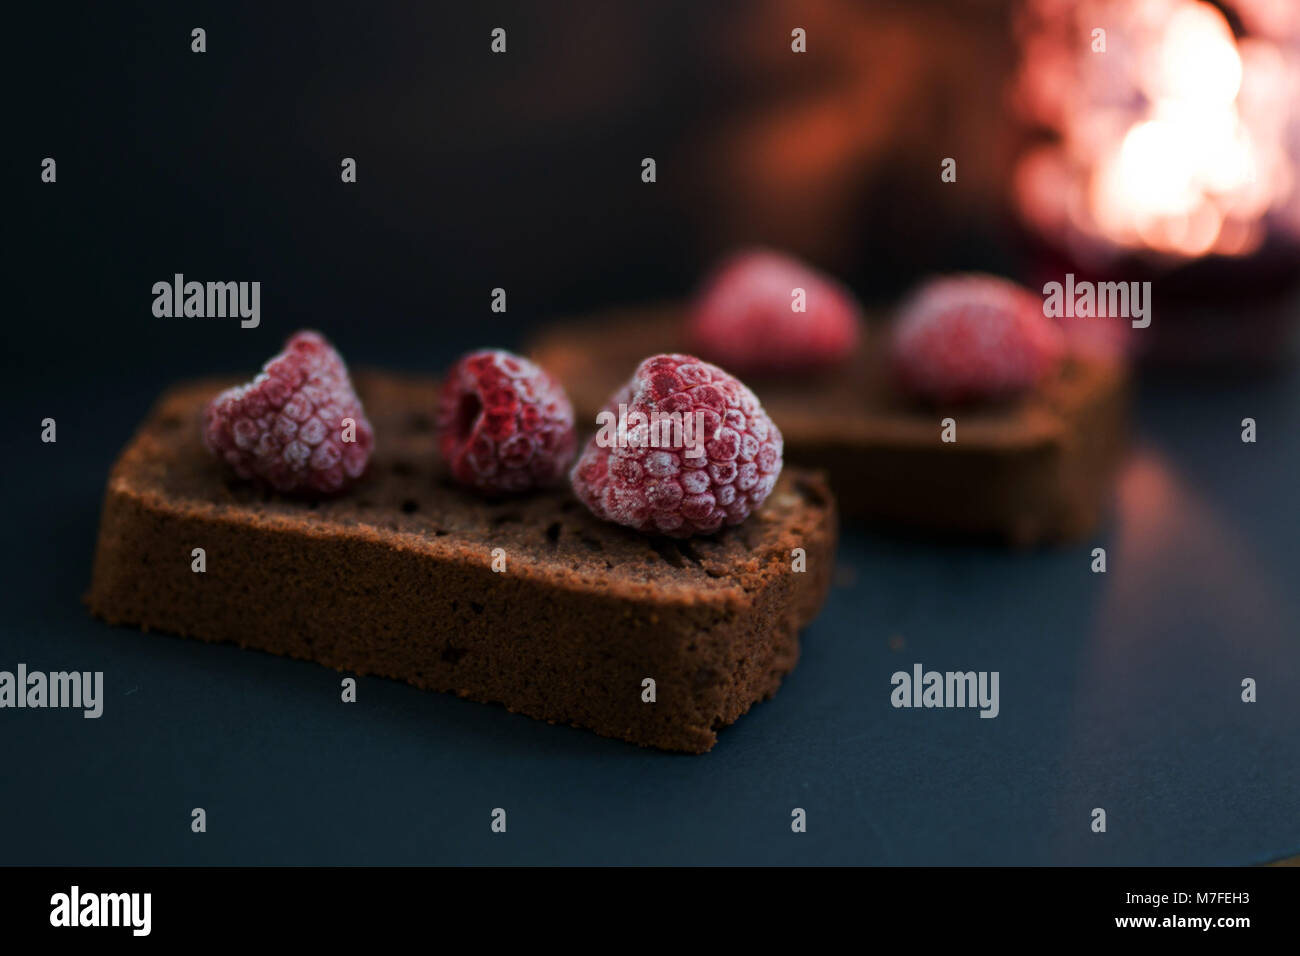 food photography - cakes - Stock Image